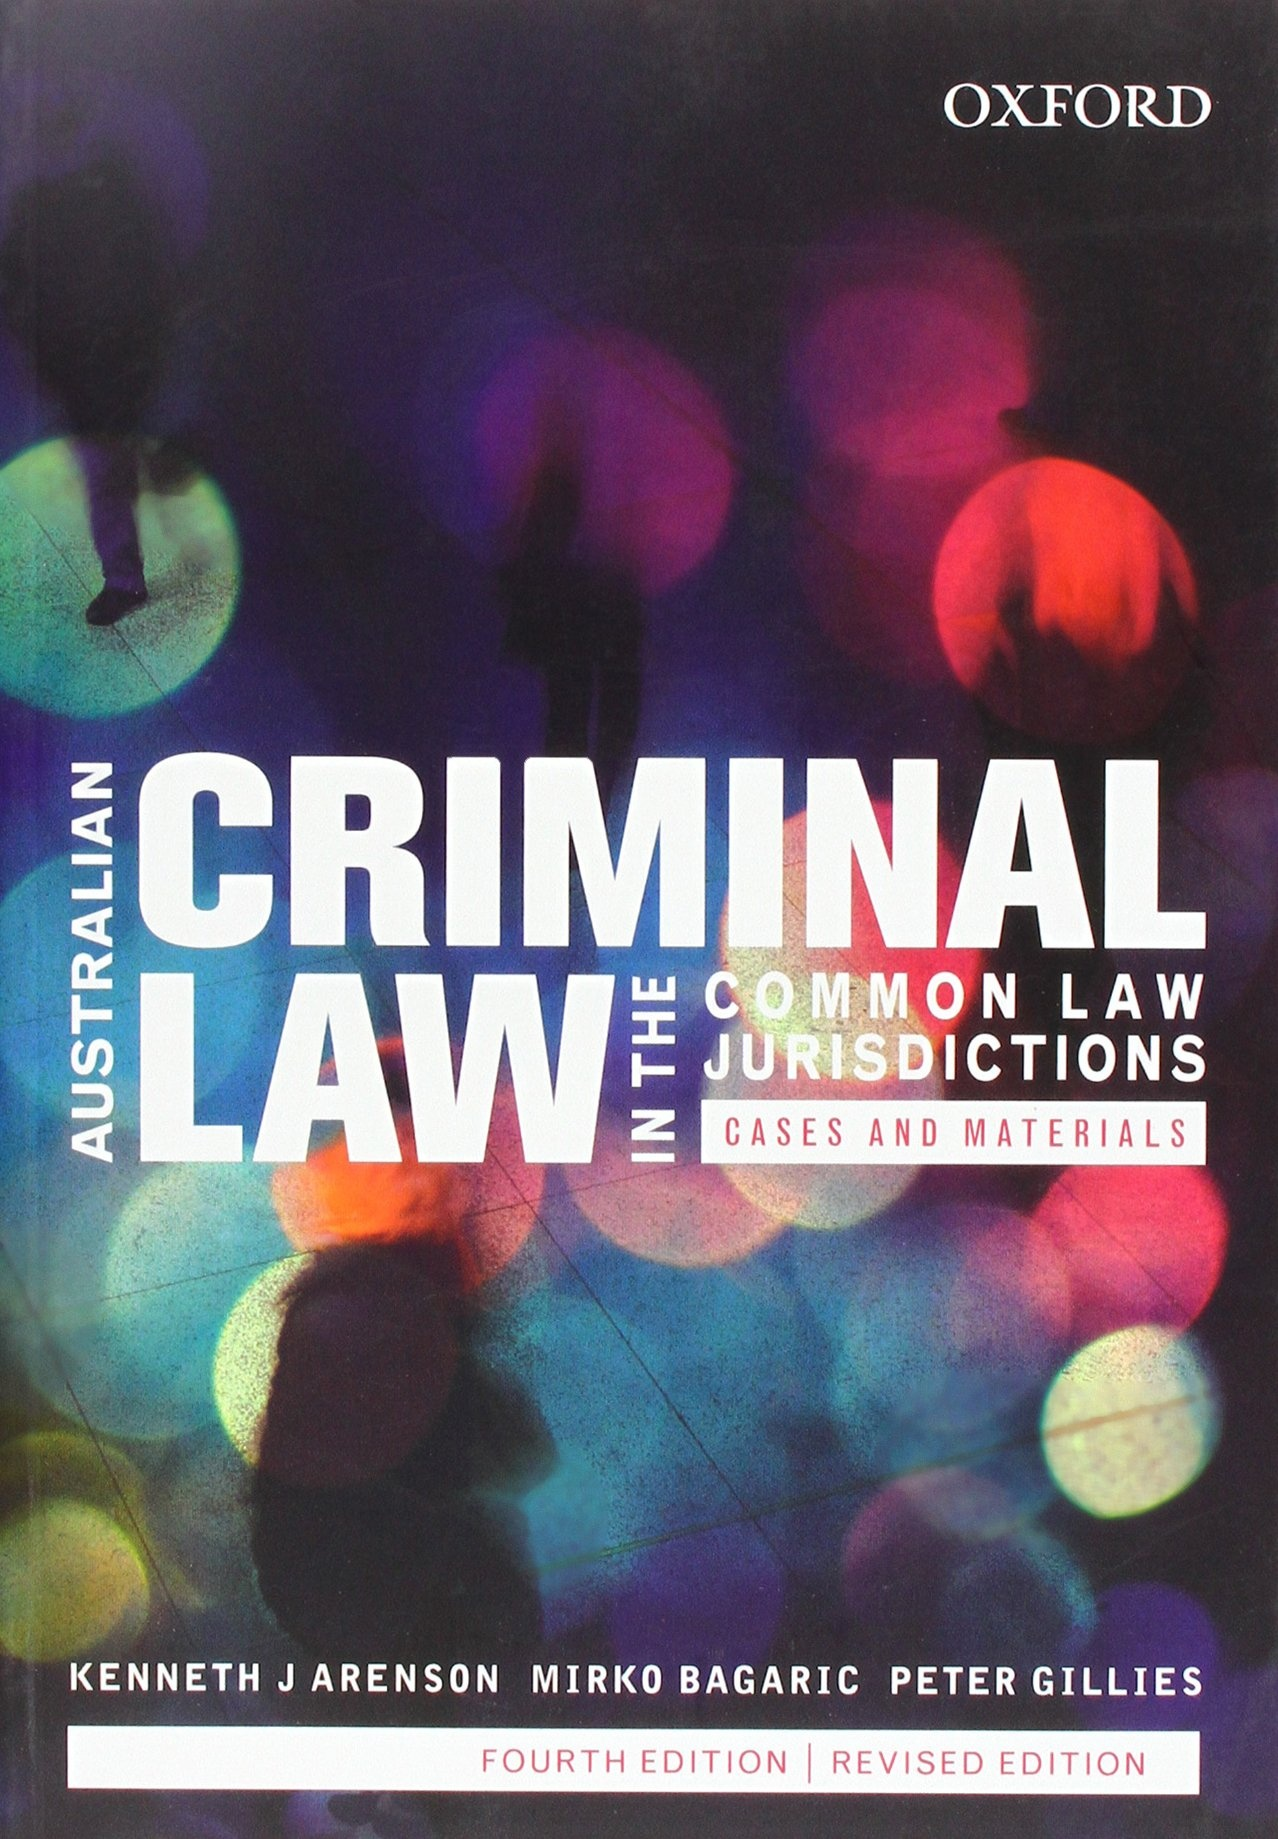 Australian Criminal Law in the Common Law Jurisdictions (Revised Edition) by Kenneth J Aronson, Mirko Agaric, Peter Gillies, ISBN: 9780190305505